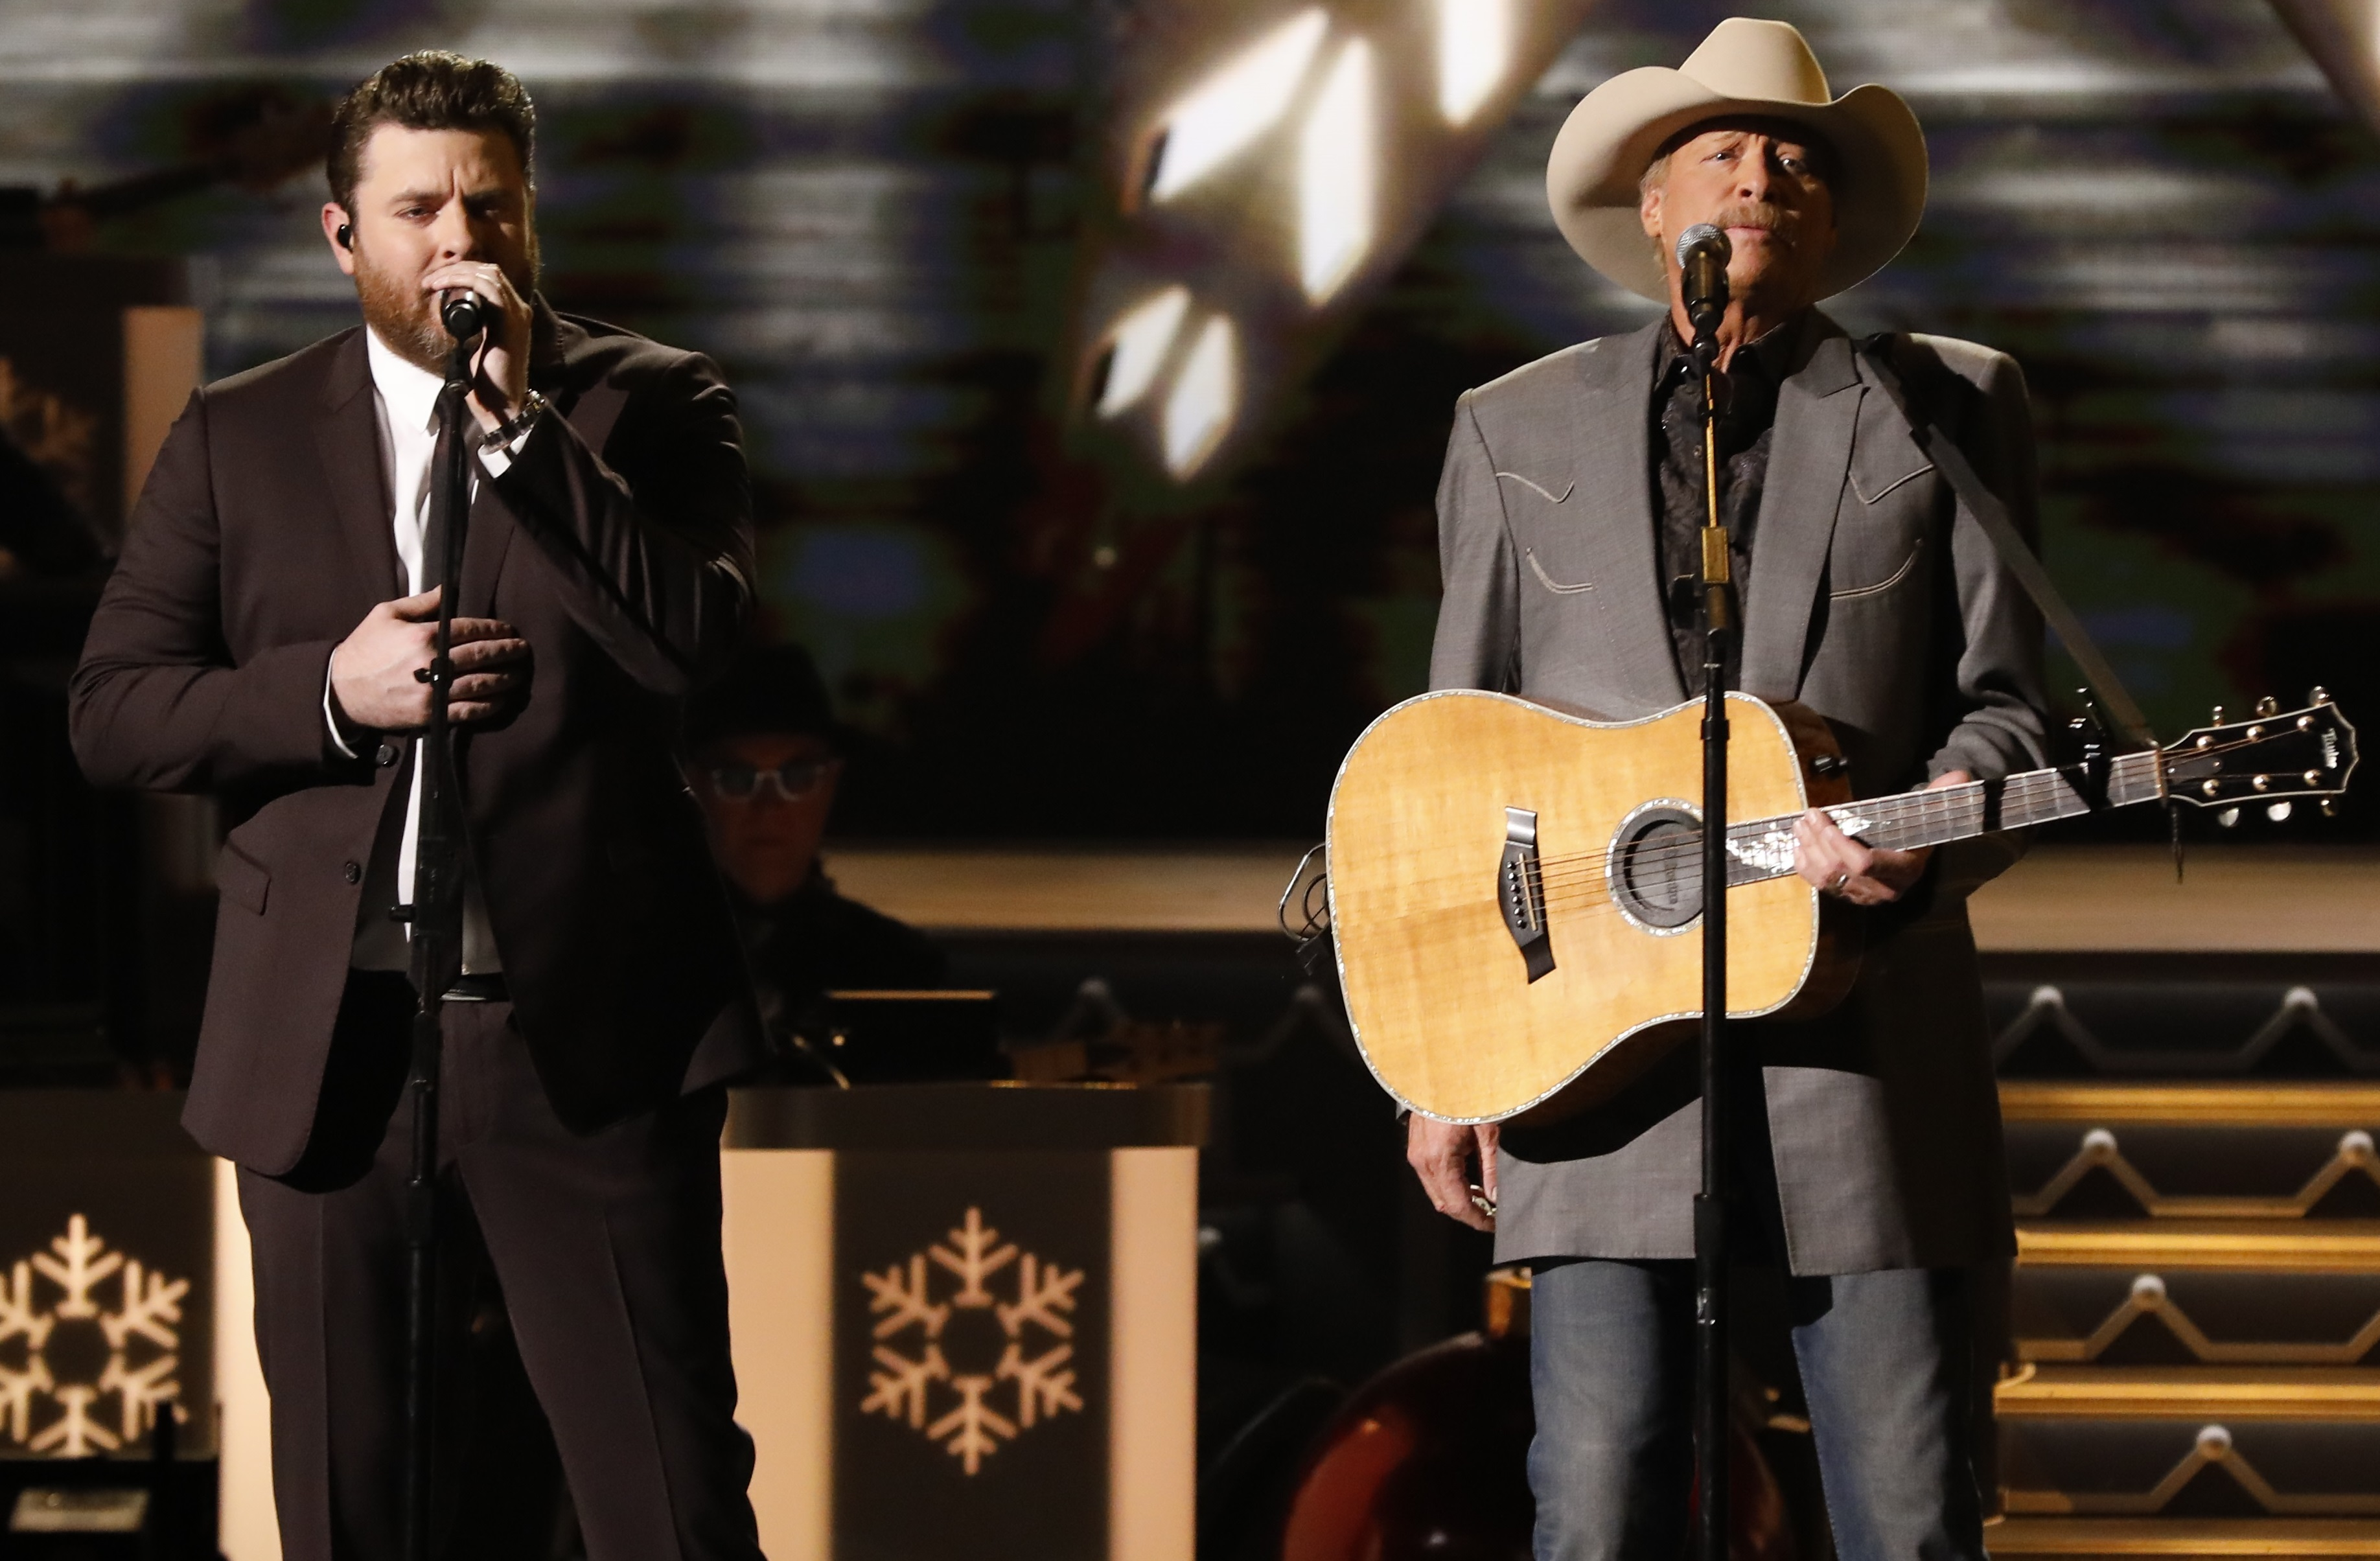 alan jackson and chris young perform theres a new kid in town sounds like nashville